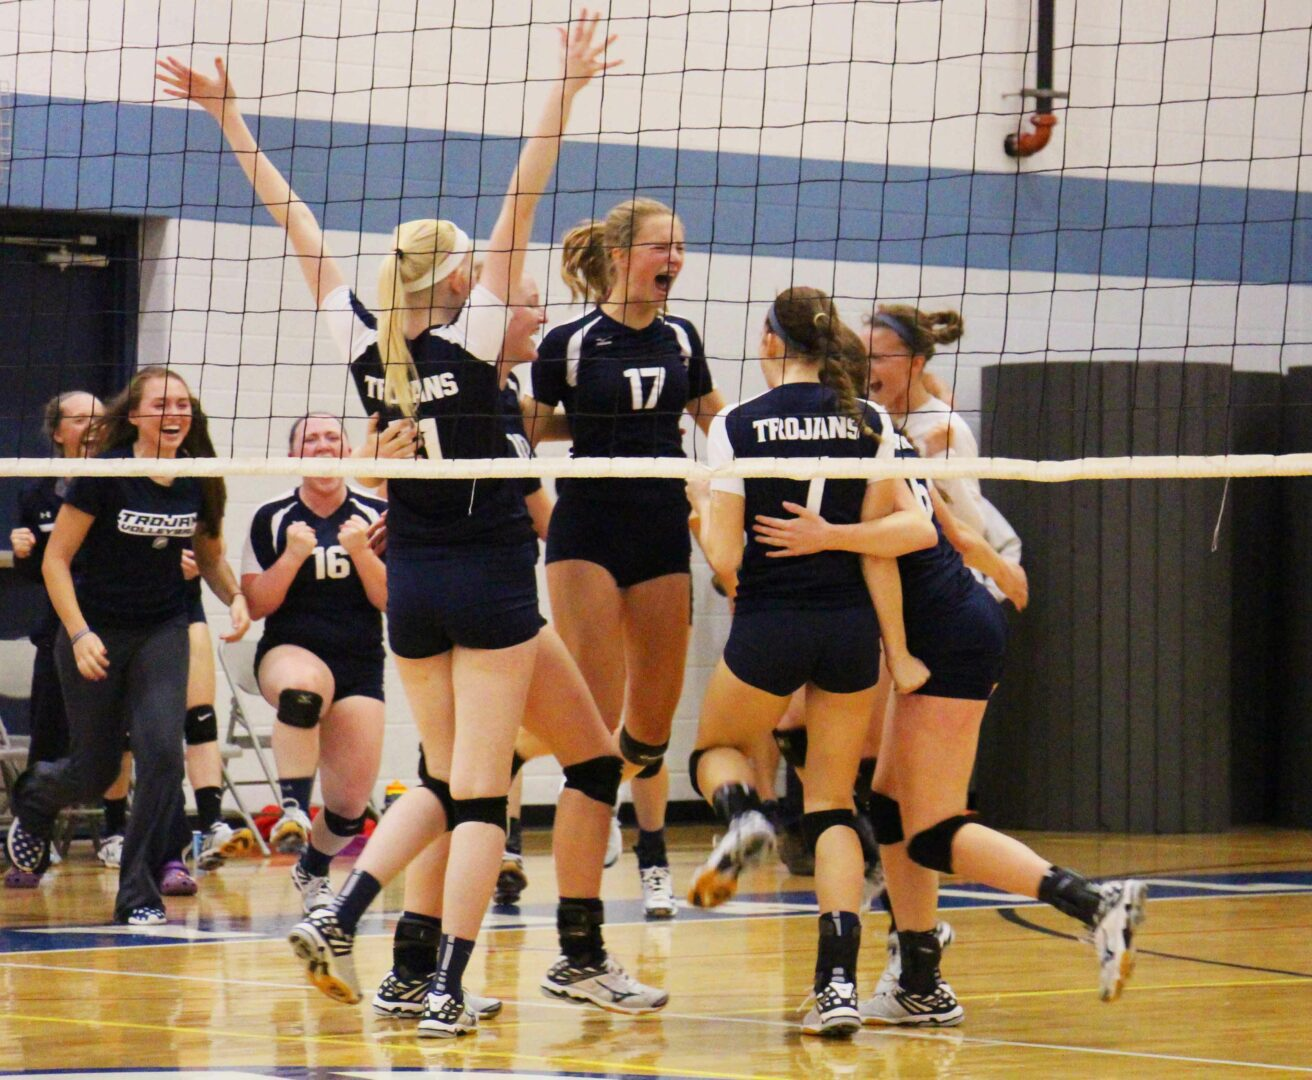 Matchups, dates, times for this week's high school district volleyball tournaments